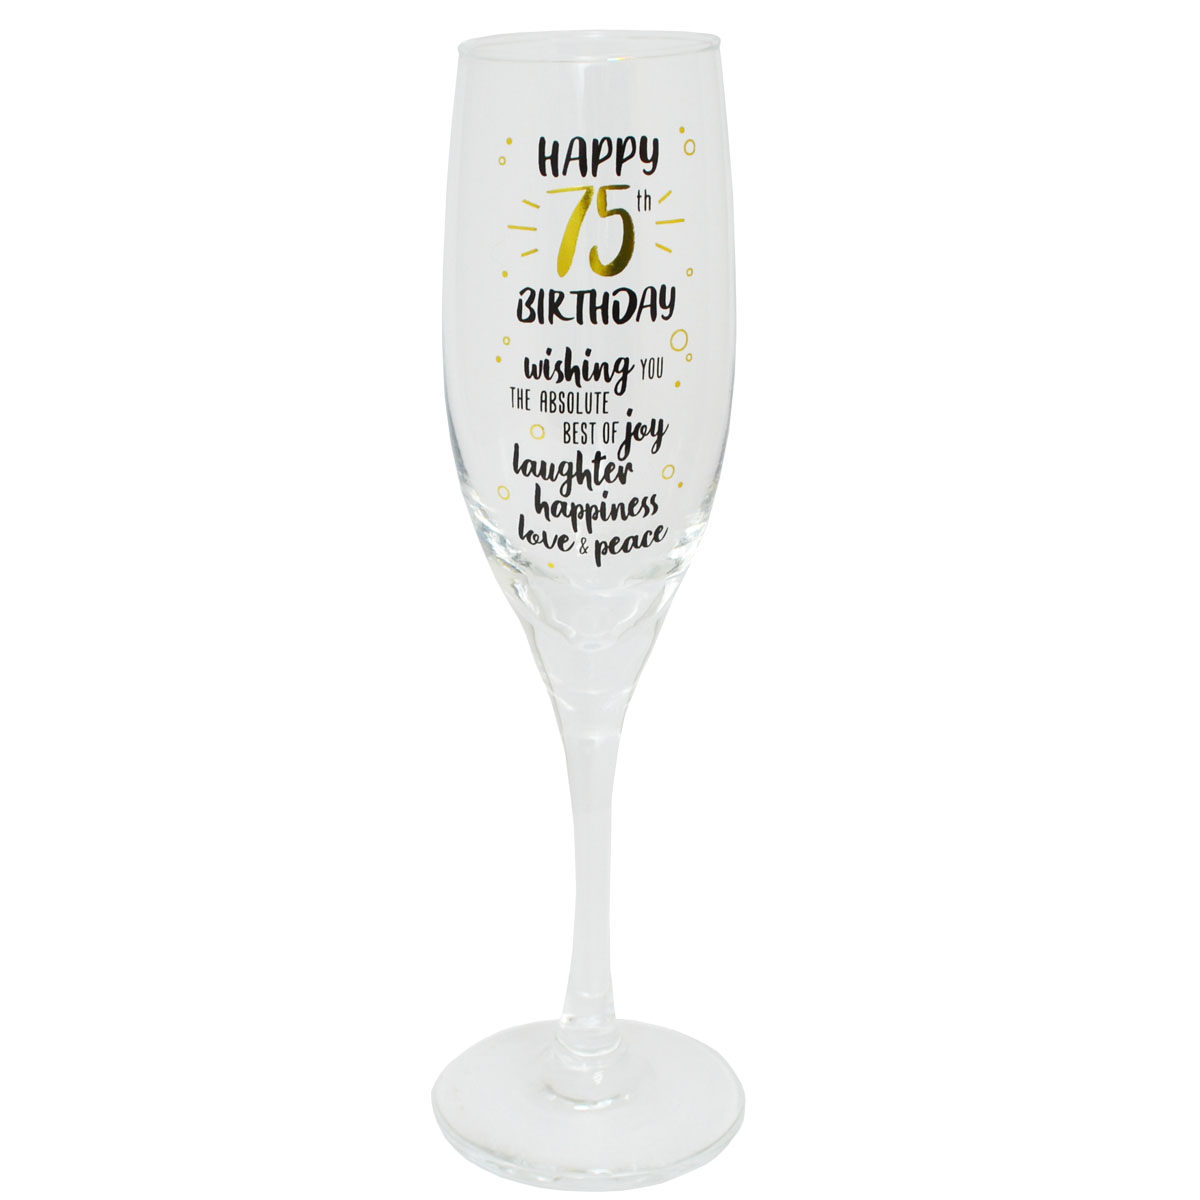 Happy 75th Birthday Celebrate In Style Champagne Flute Glass In Gift Box